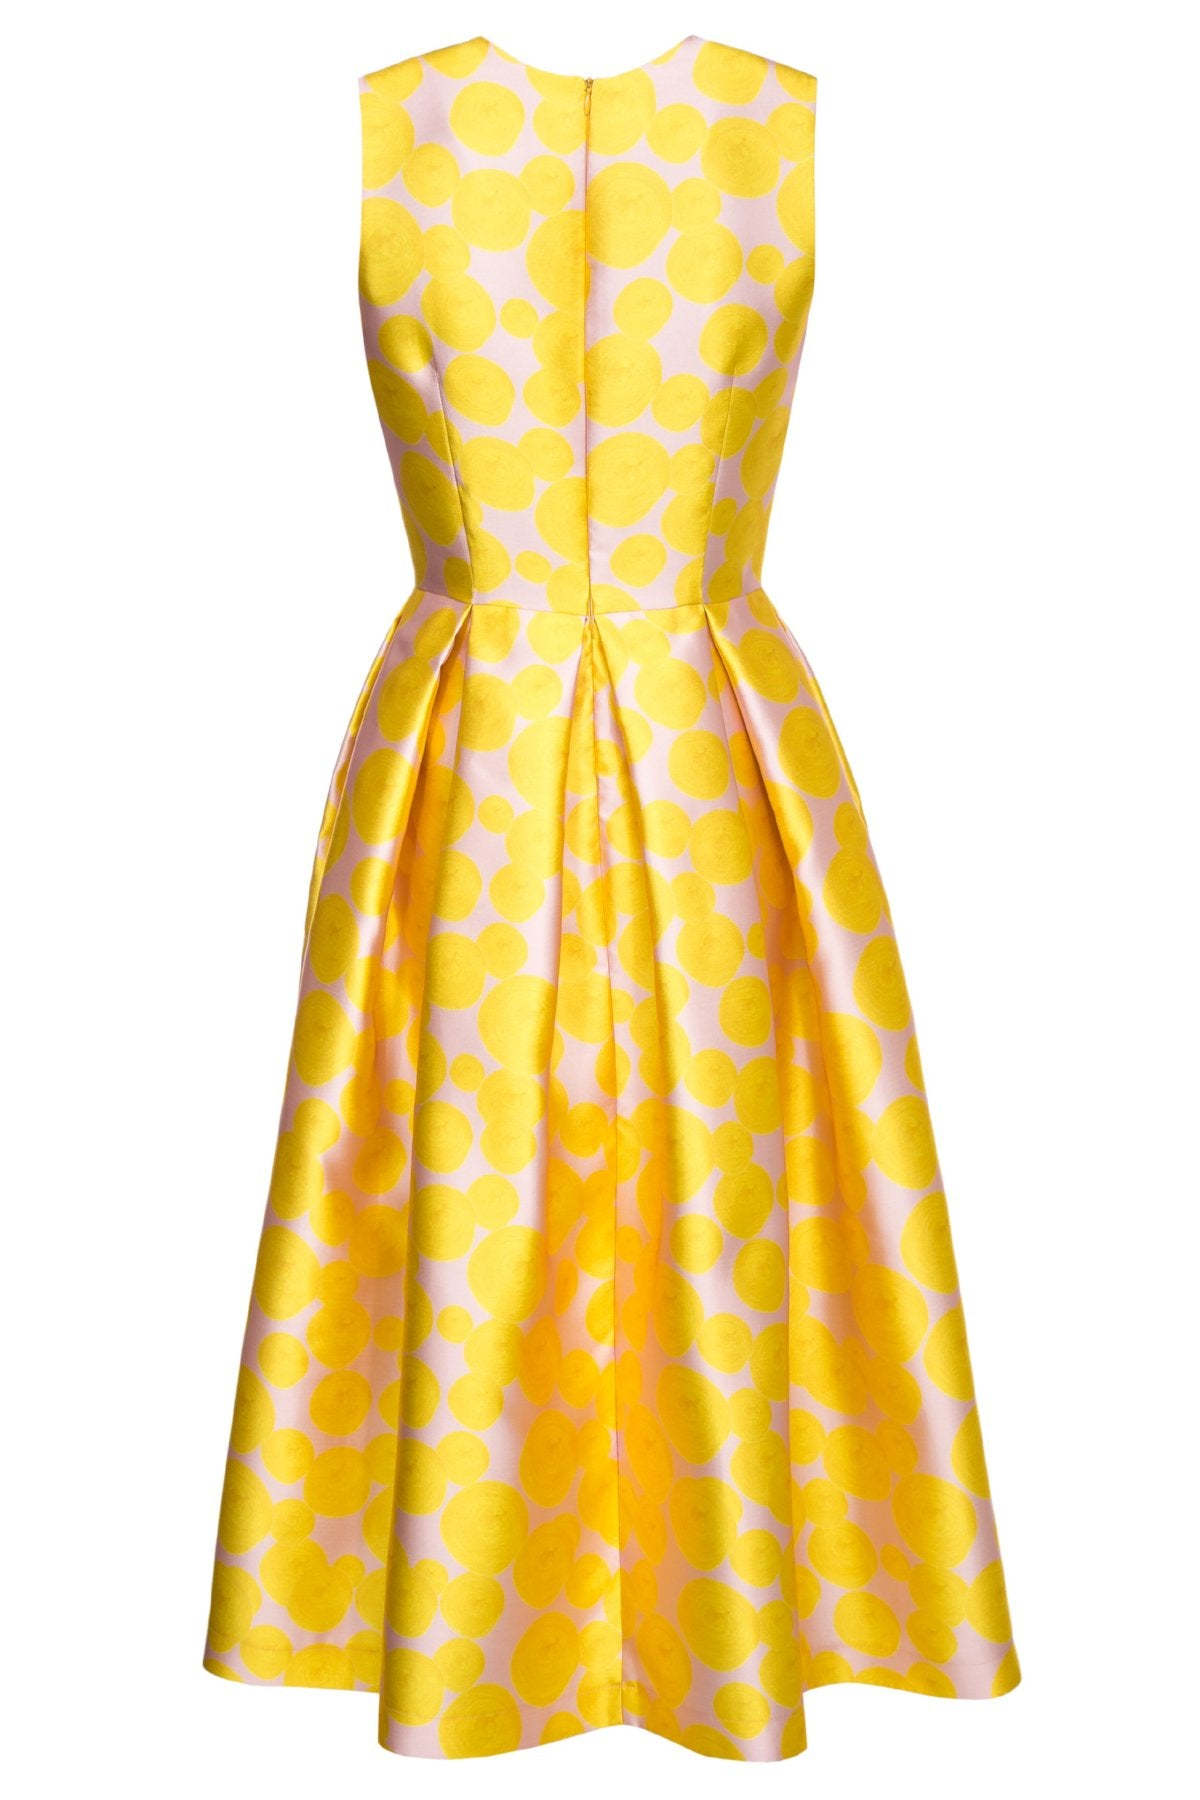 aa2247df387 Yellow Midi Dress with Box Pleats and Side Pockets – Lilli Jahilo